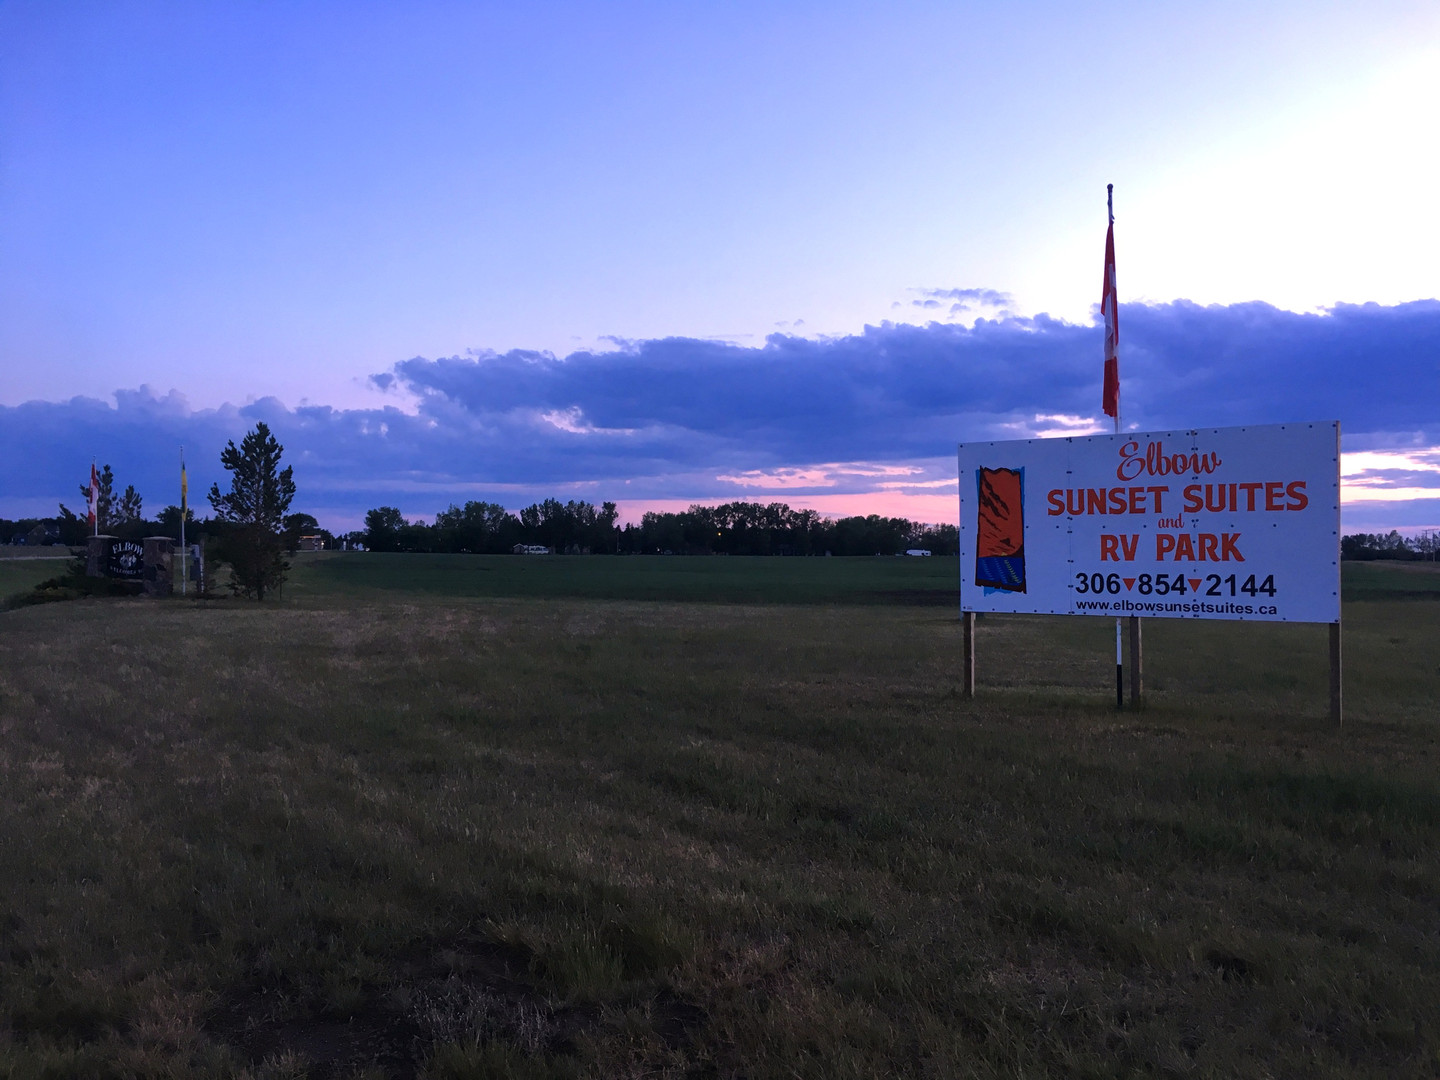 Elbow Sunset Suites and RV Park